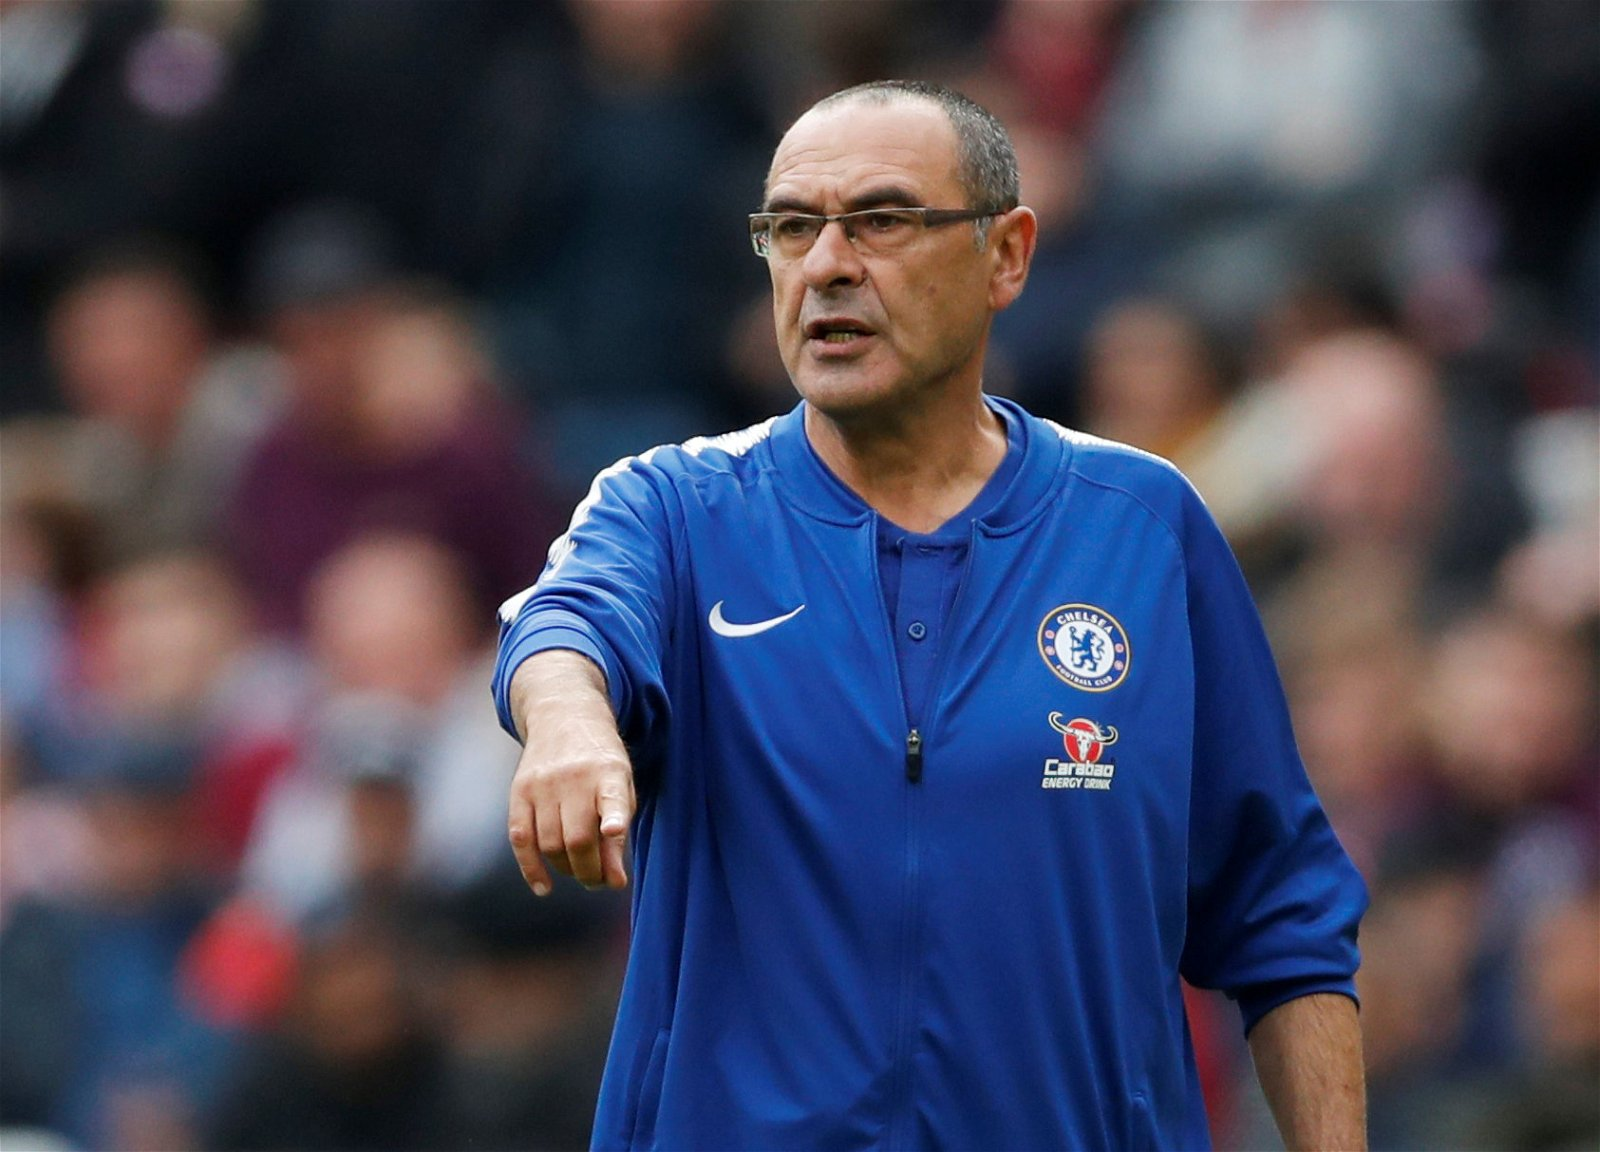 2018 09 23T130121Z 477903783 RC1AC23AC8A0 RTRMADP 3 SOCCER ENGLAND WHU CHE - Opinion: Sarri needs to fully trust rotation option who will help Hazard & Higuain thrive